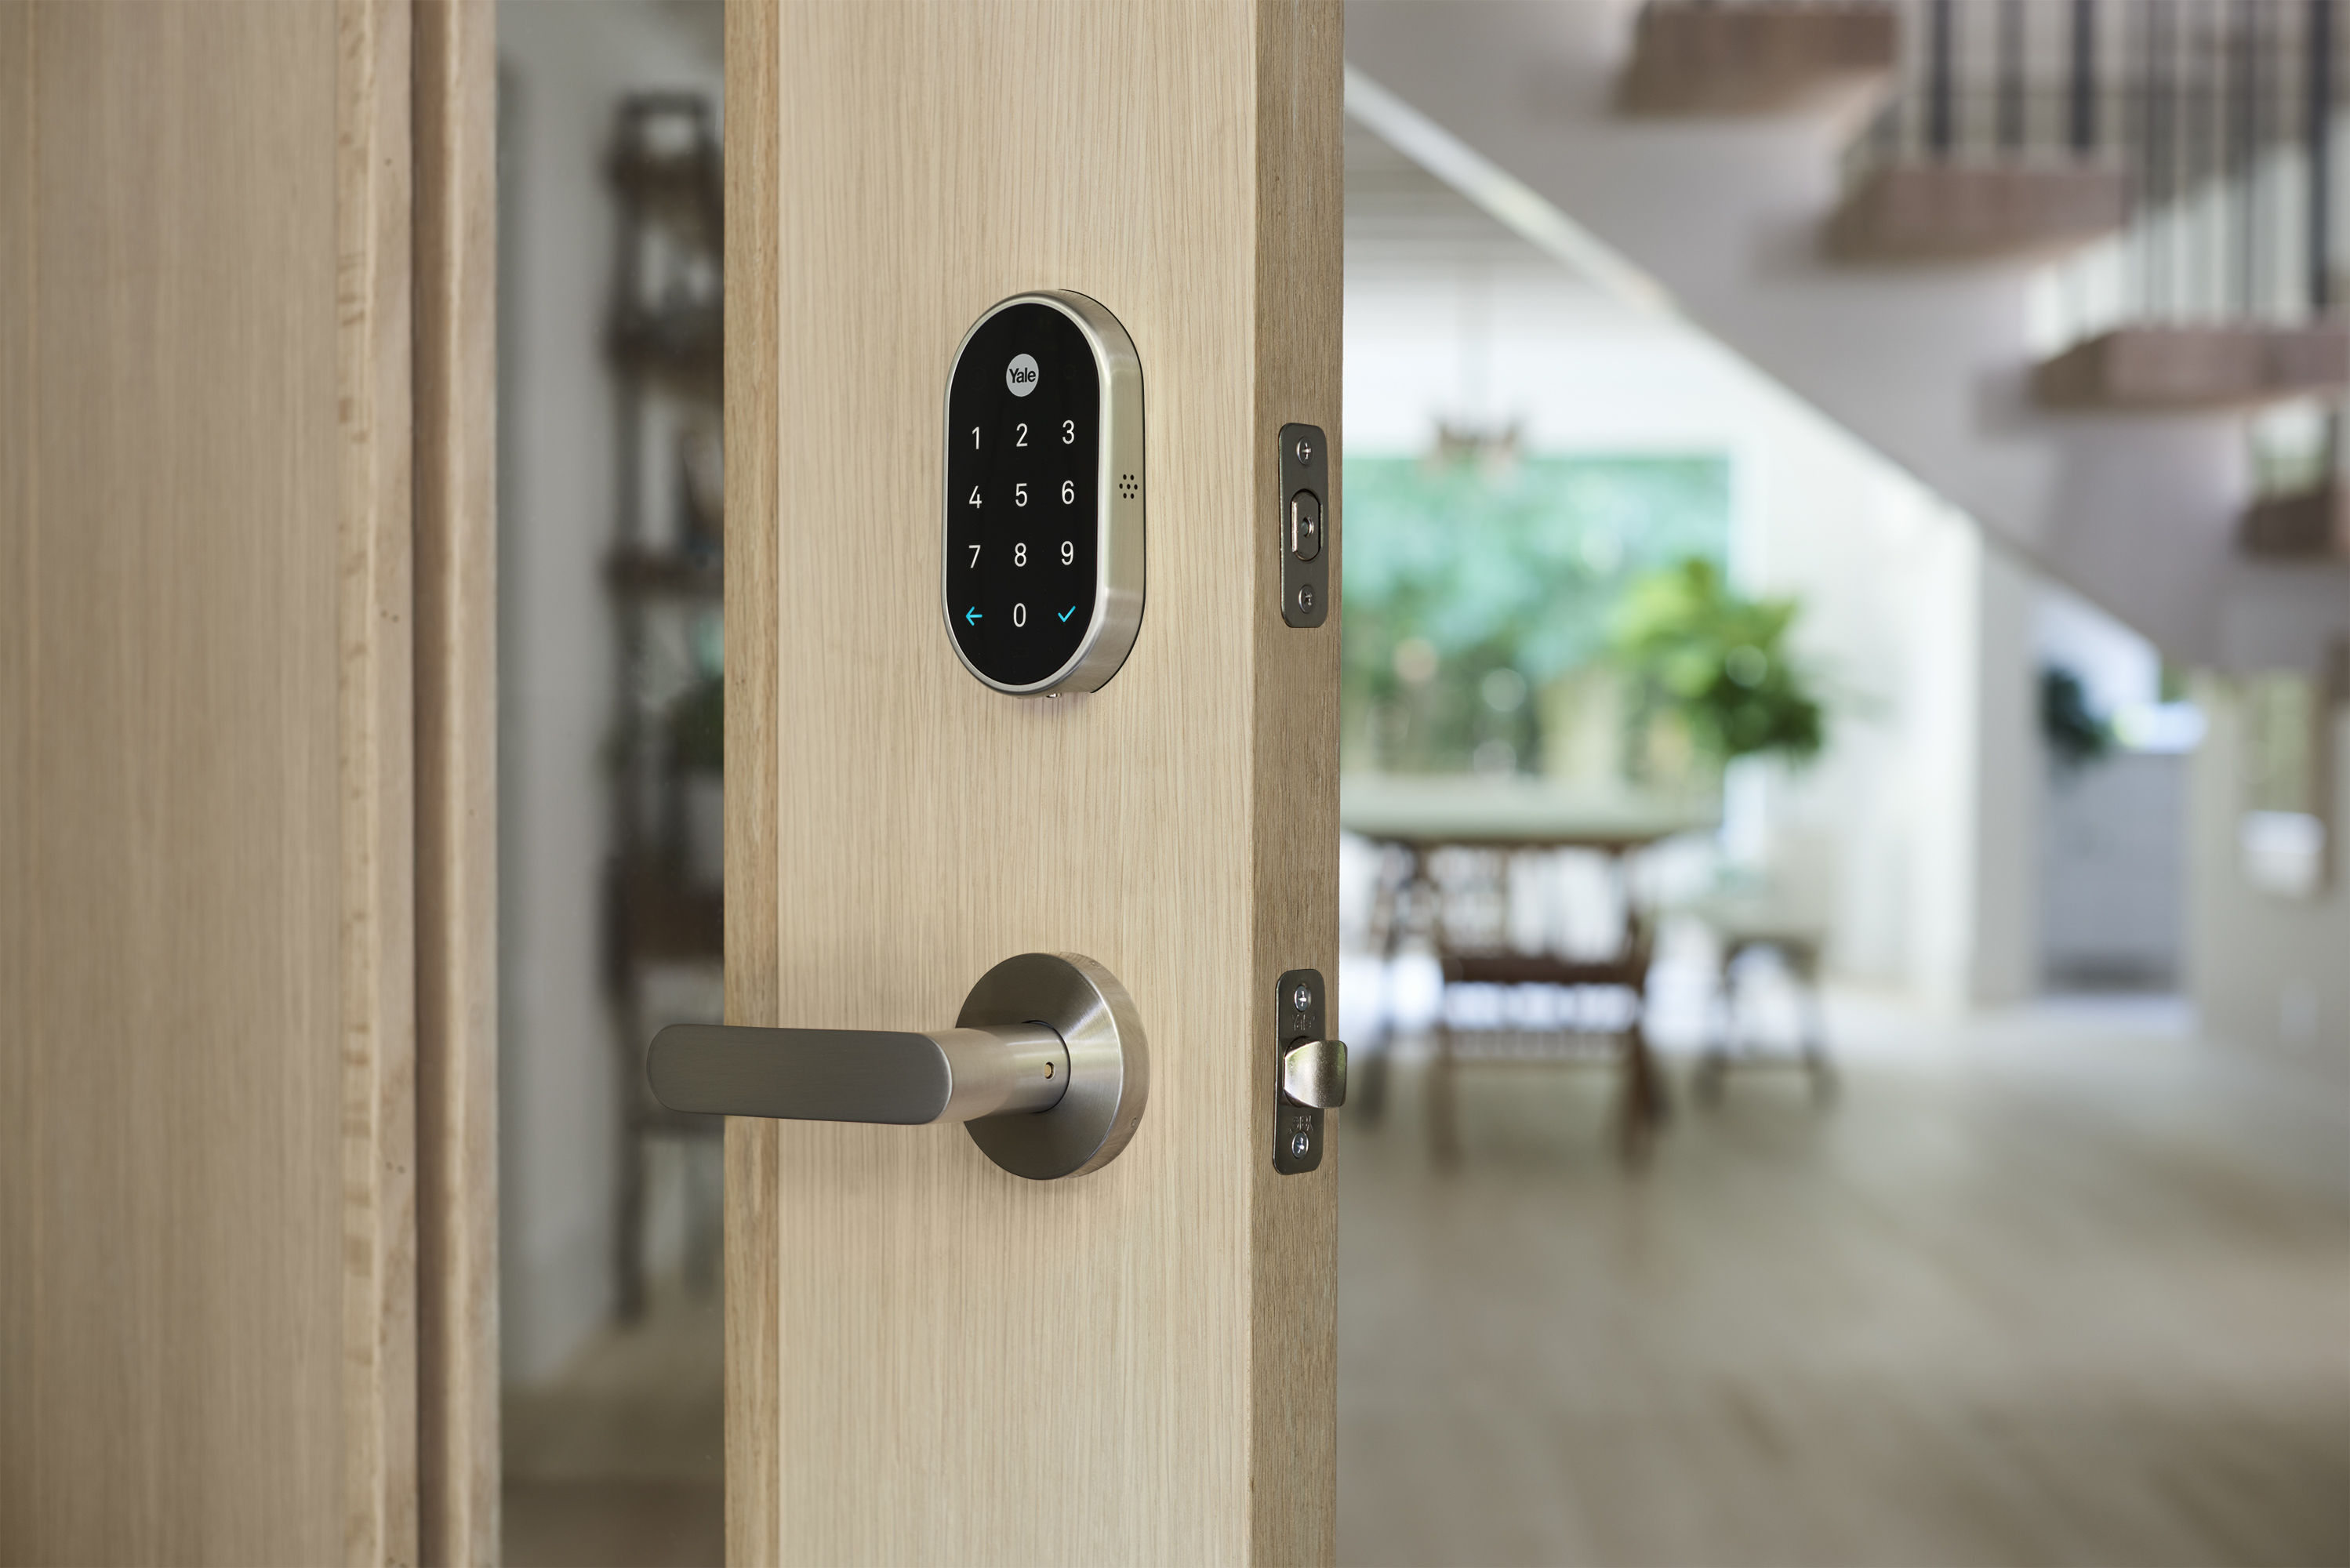 Nest intros new smart products for the front door